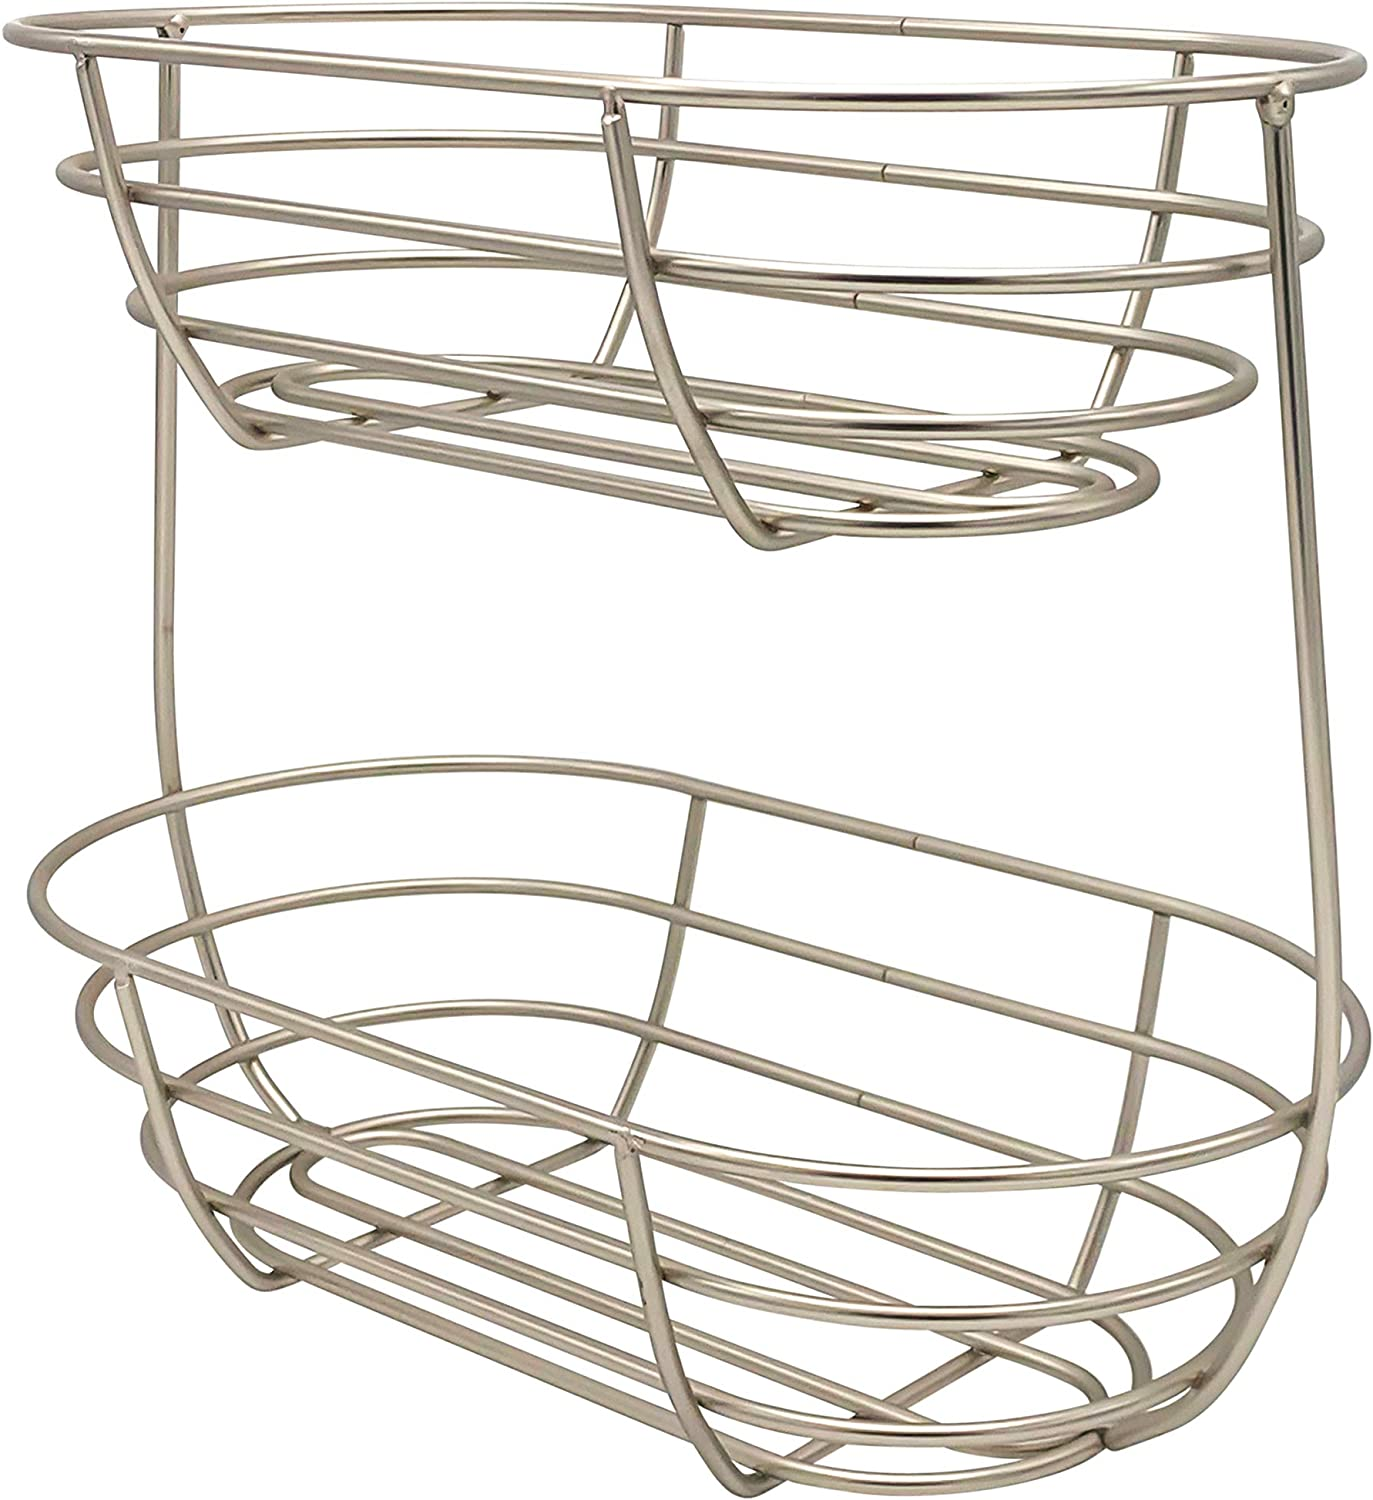 Spectrum Diversified Euro Arched Server Contemporary Stacked, 2-Tier Bowls for Modern Kitchen Counters, Sleek Fruit Basket Stand, Satin Nickel